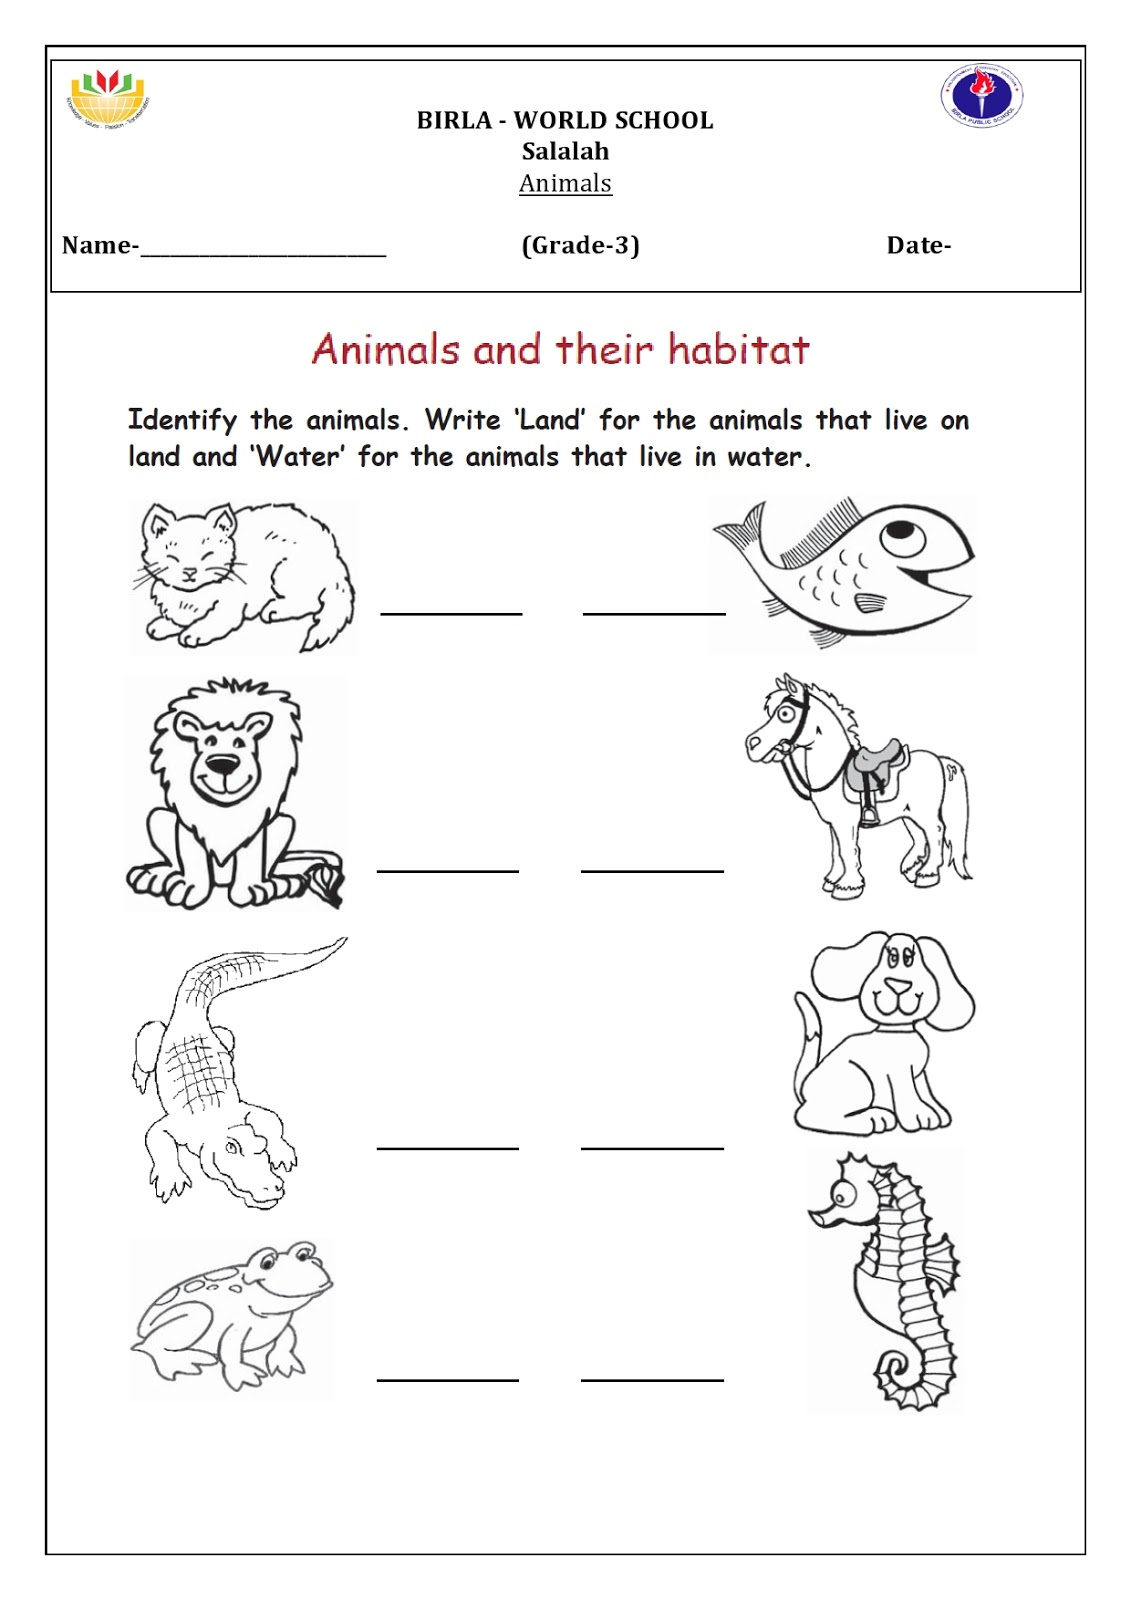 Birla World School Oman Homework For Grade 3 B On 18 08 16